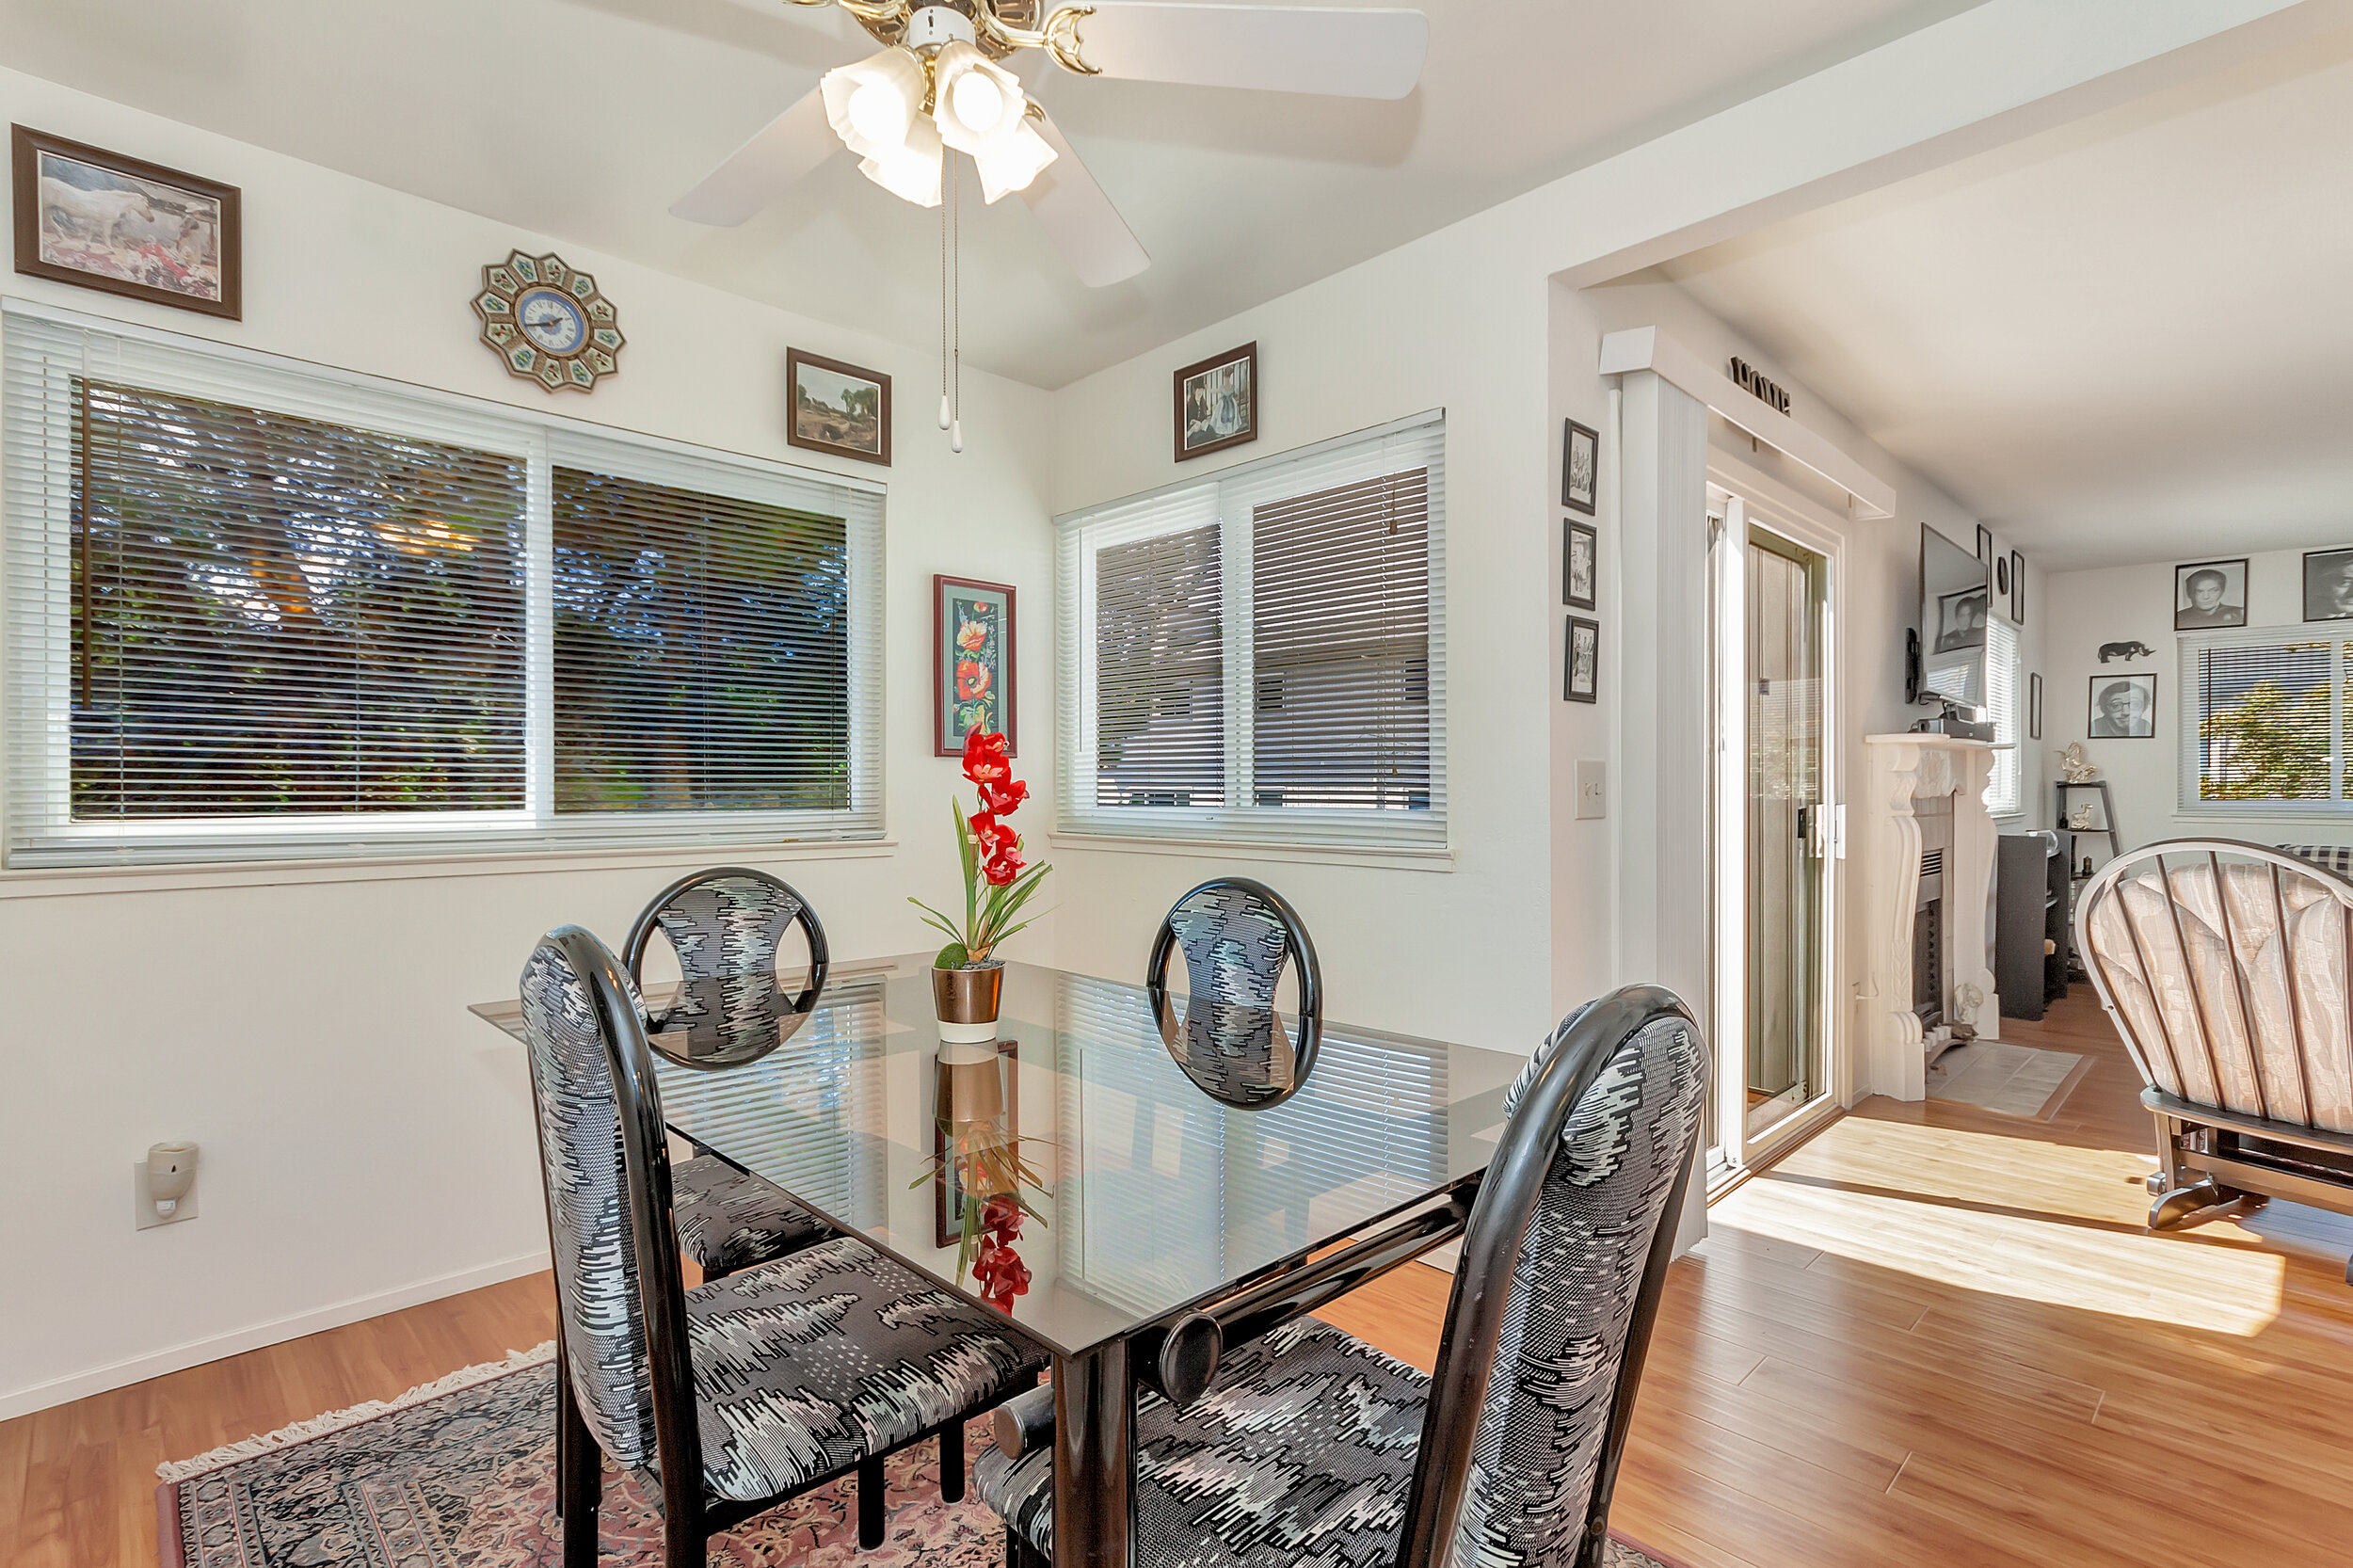 Dining nook located off of kitchen has beautiful natural light.